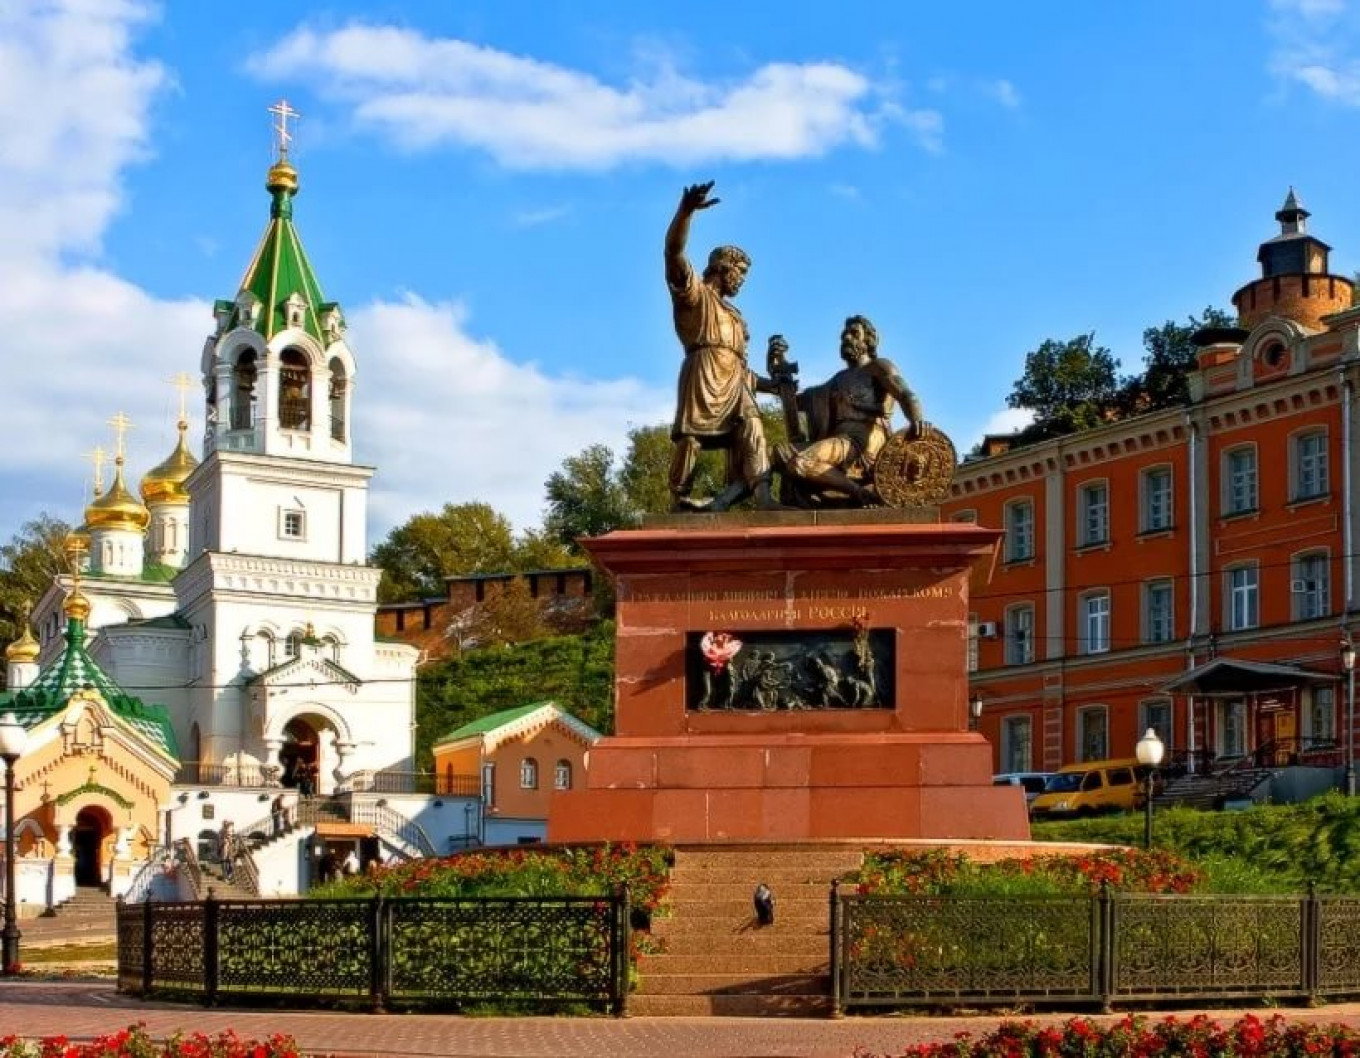 Nizhny Novgorod can be reached in just four hours from Moscow by train. RUSSIASPORT.RU